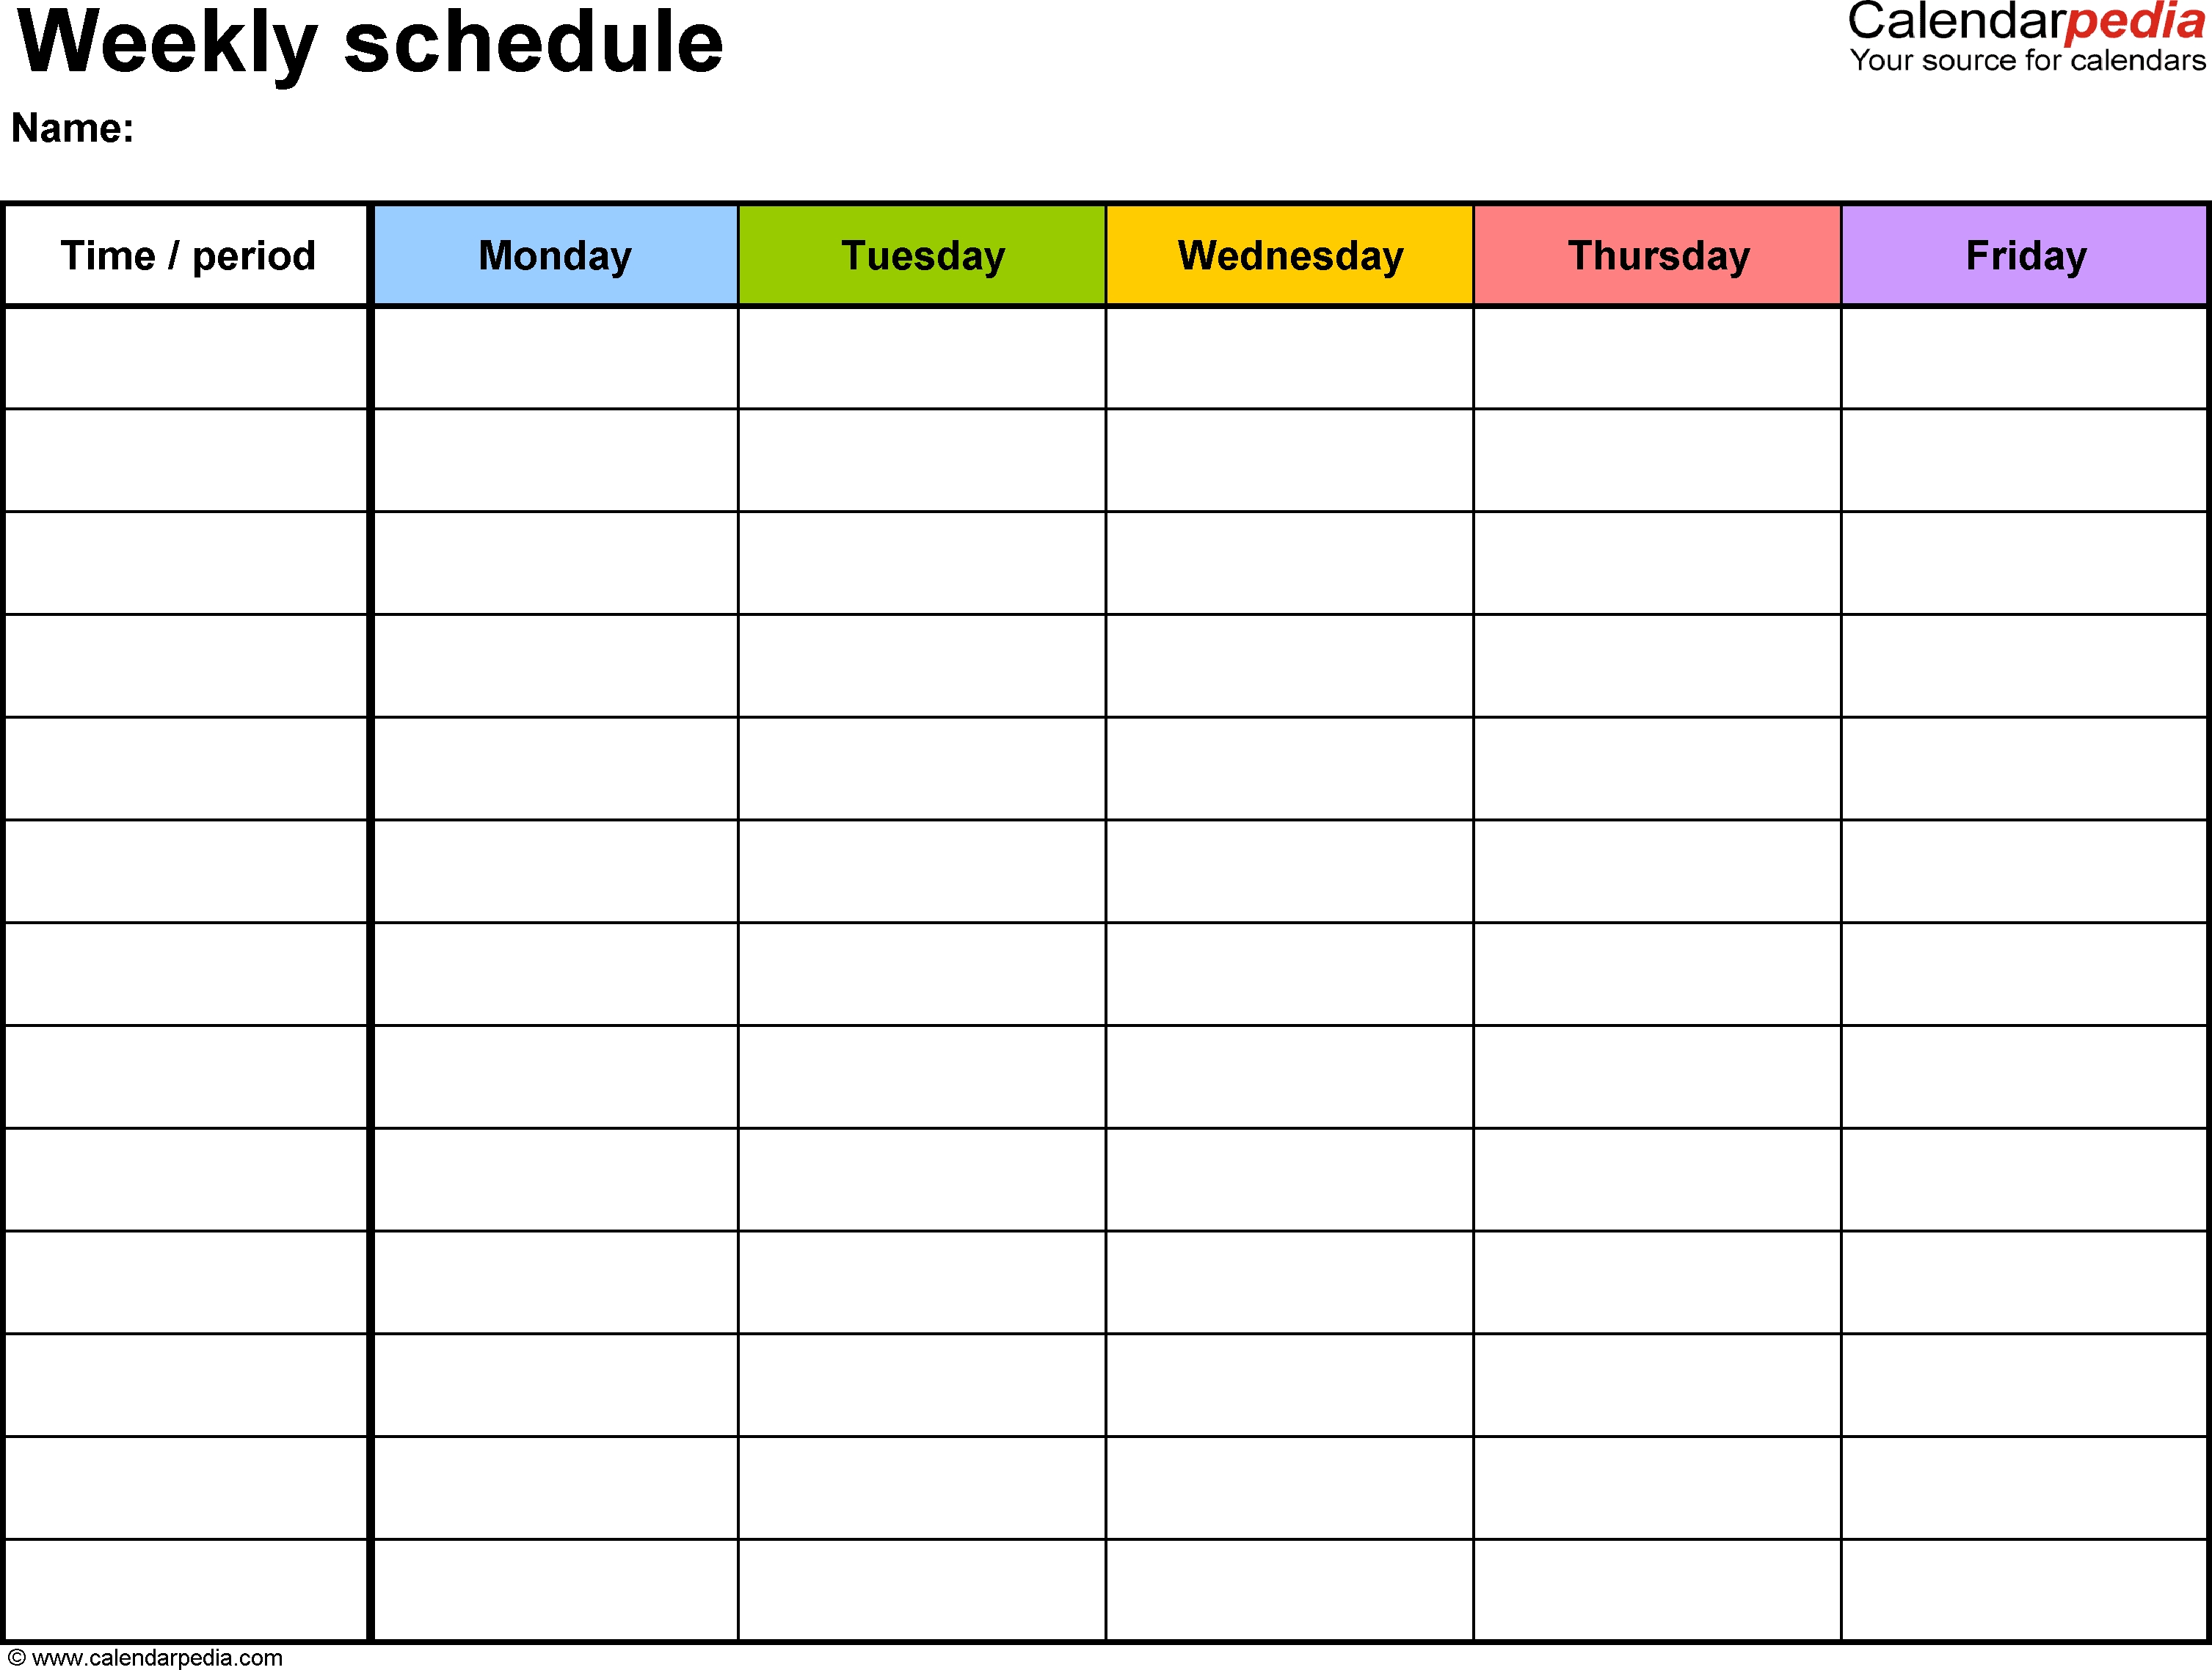 Free Weekly Schedule Templates For Word - 18 Templates  Calendar Monday Through Friday Schedule